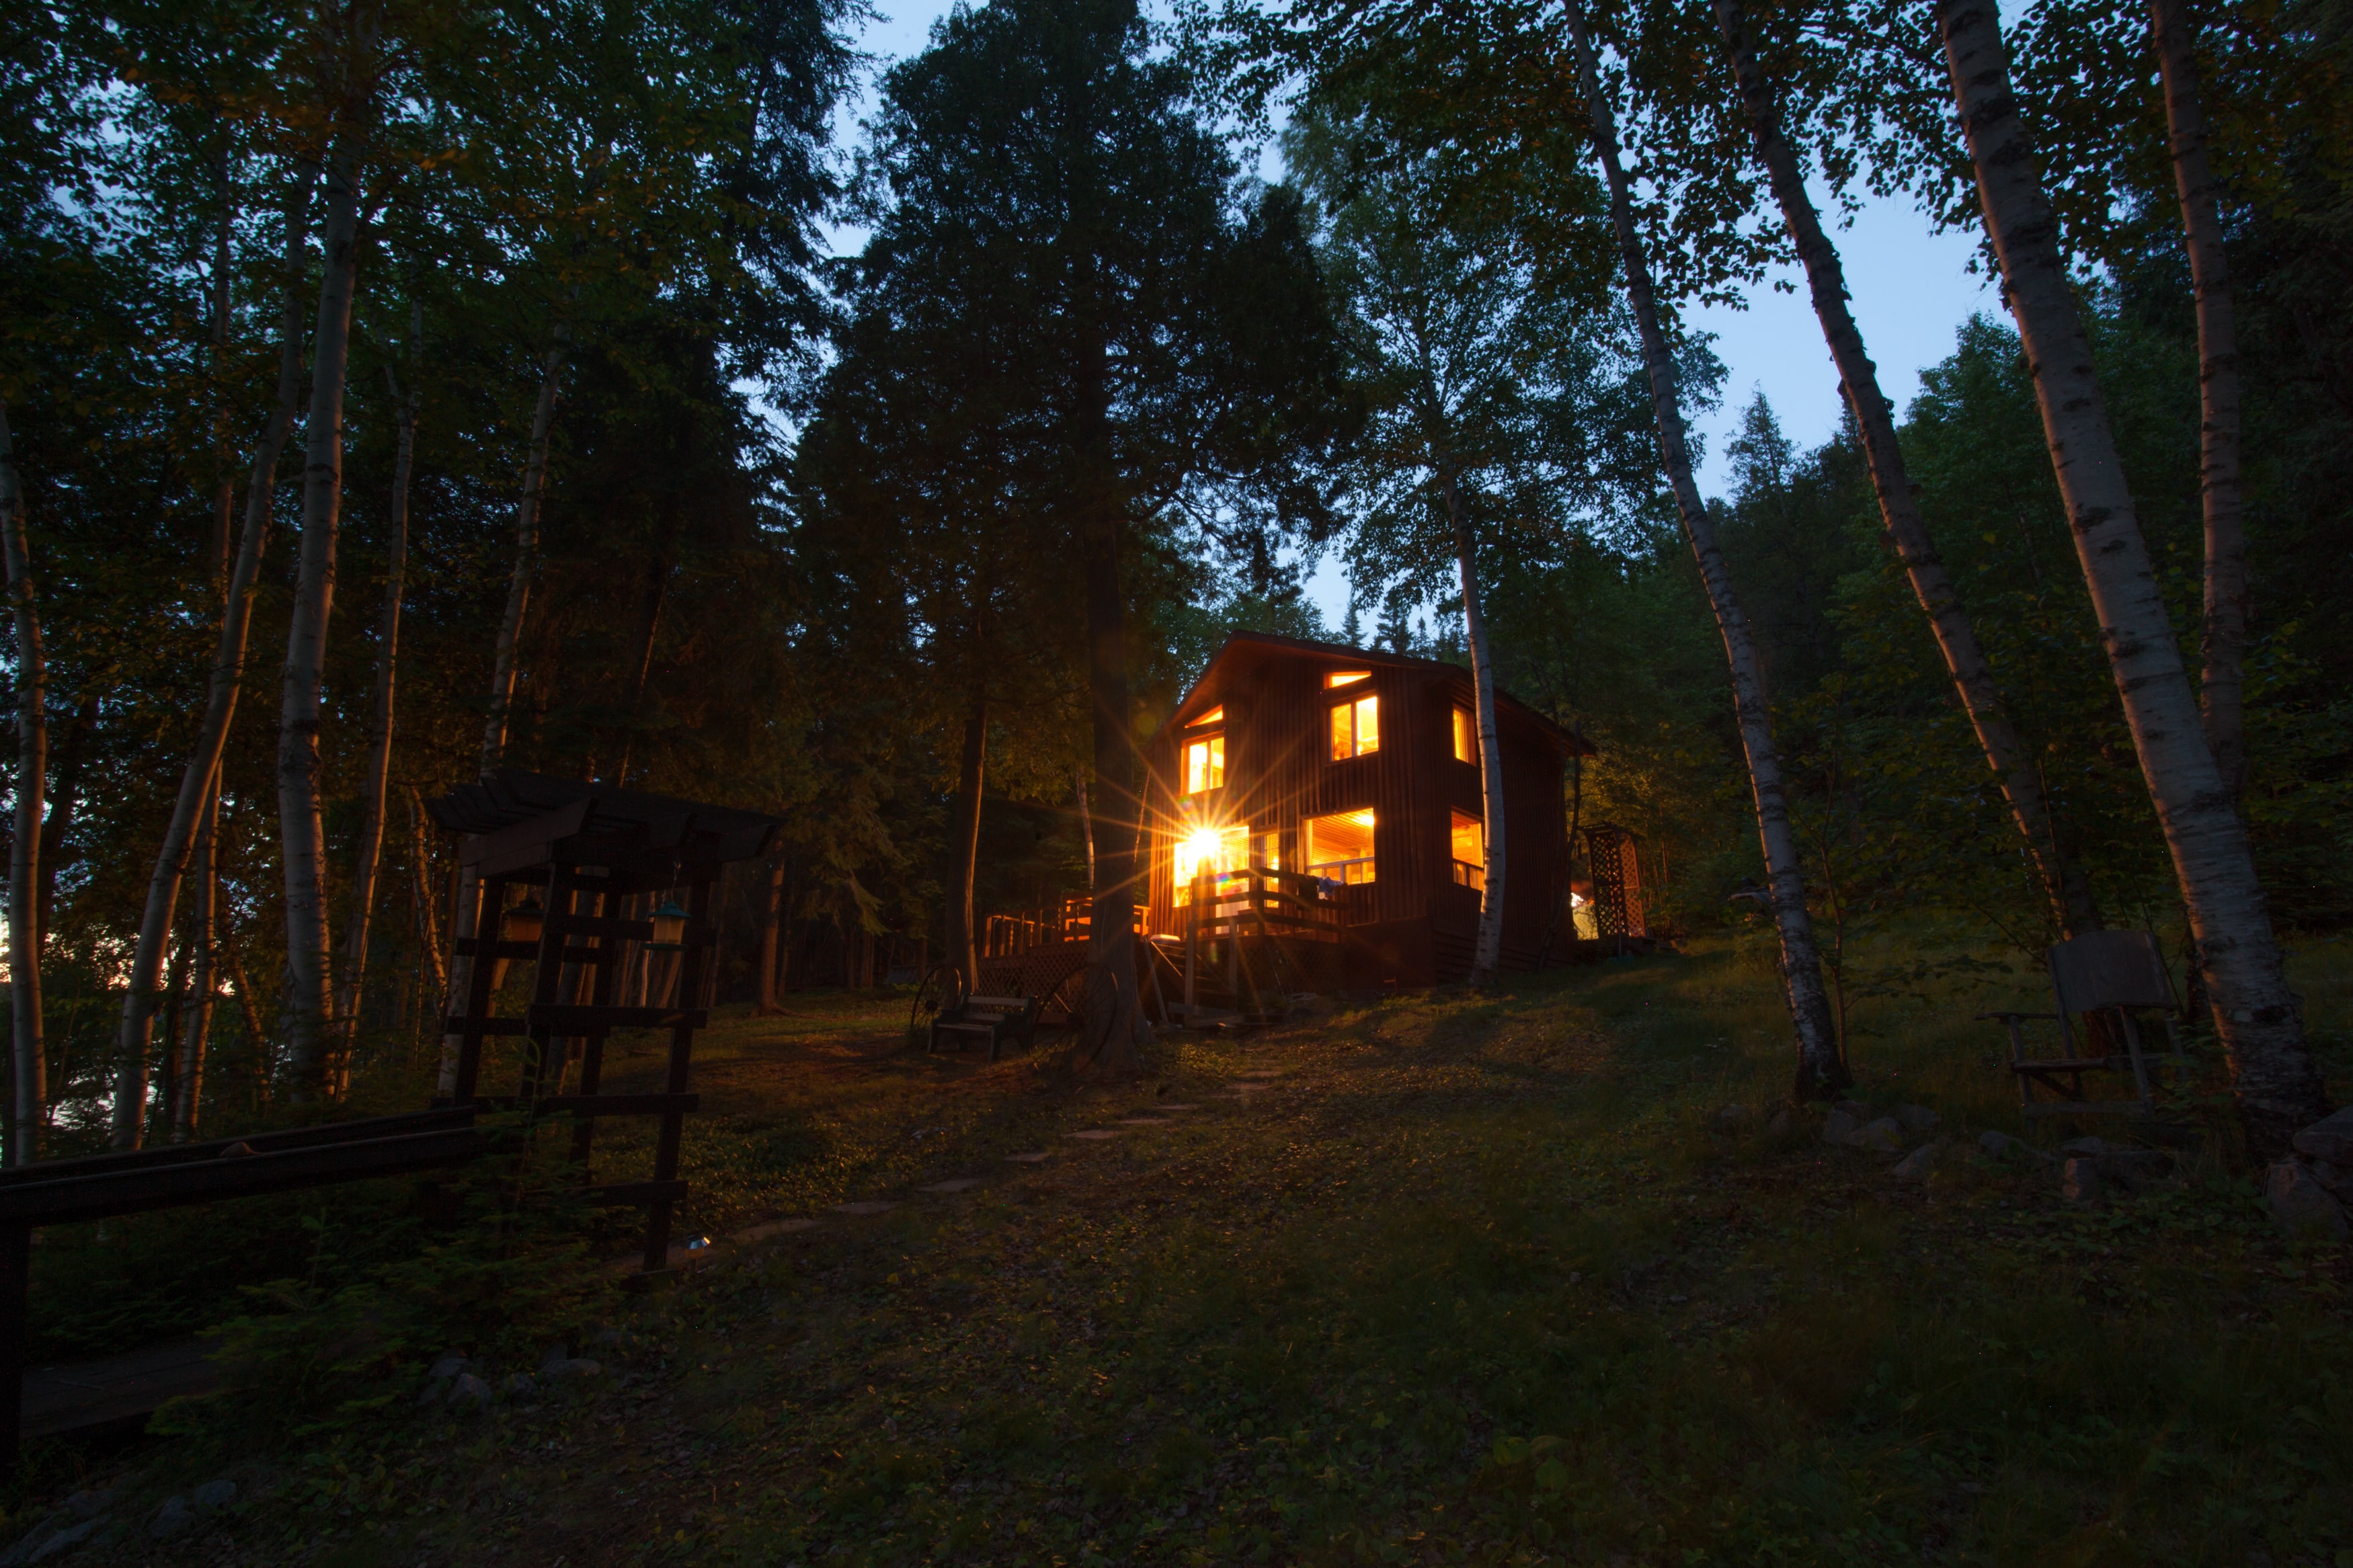 An illuminated wooden house surrounded by birch trees near Larder Lake